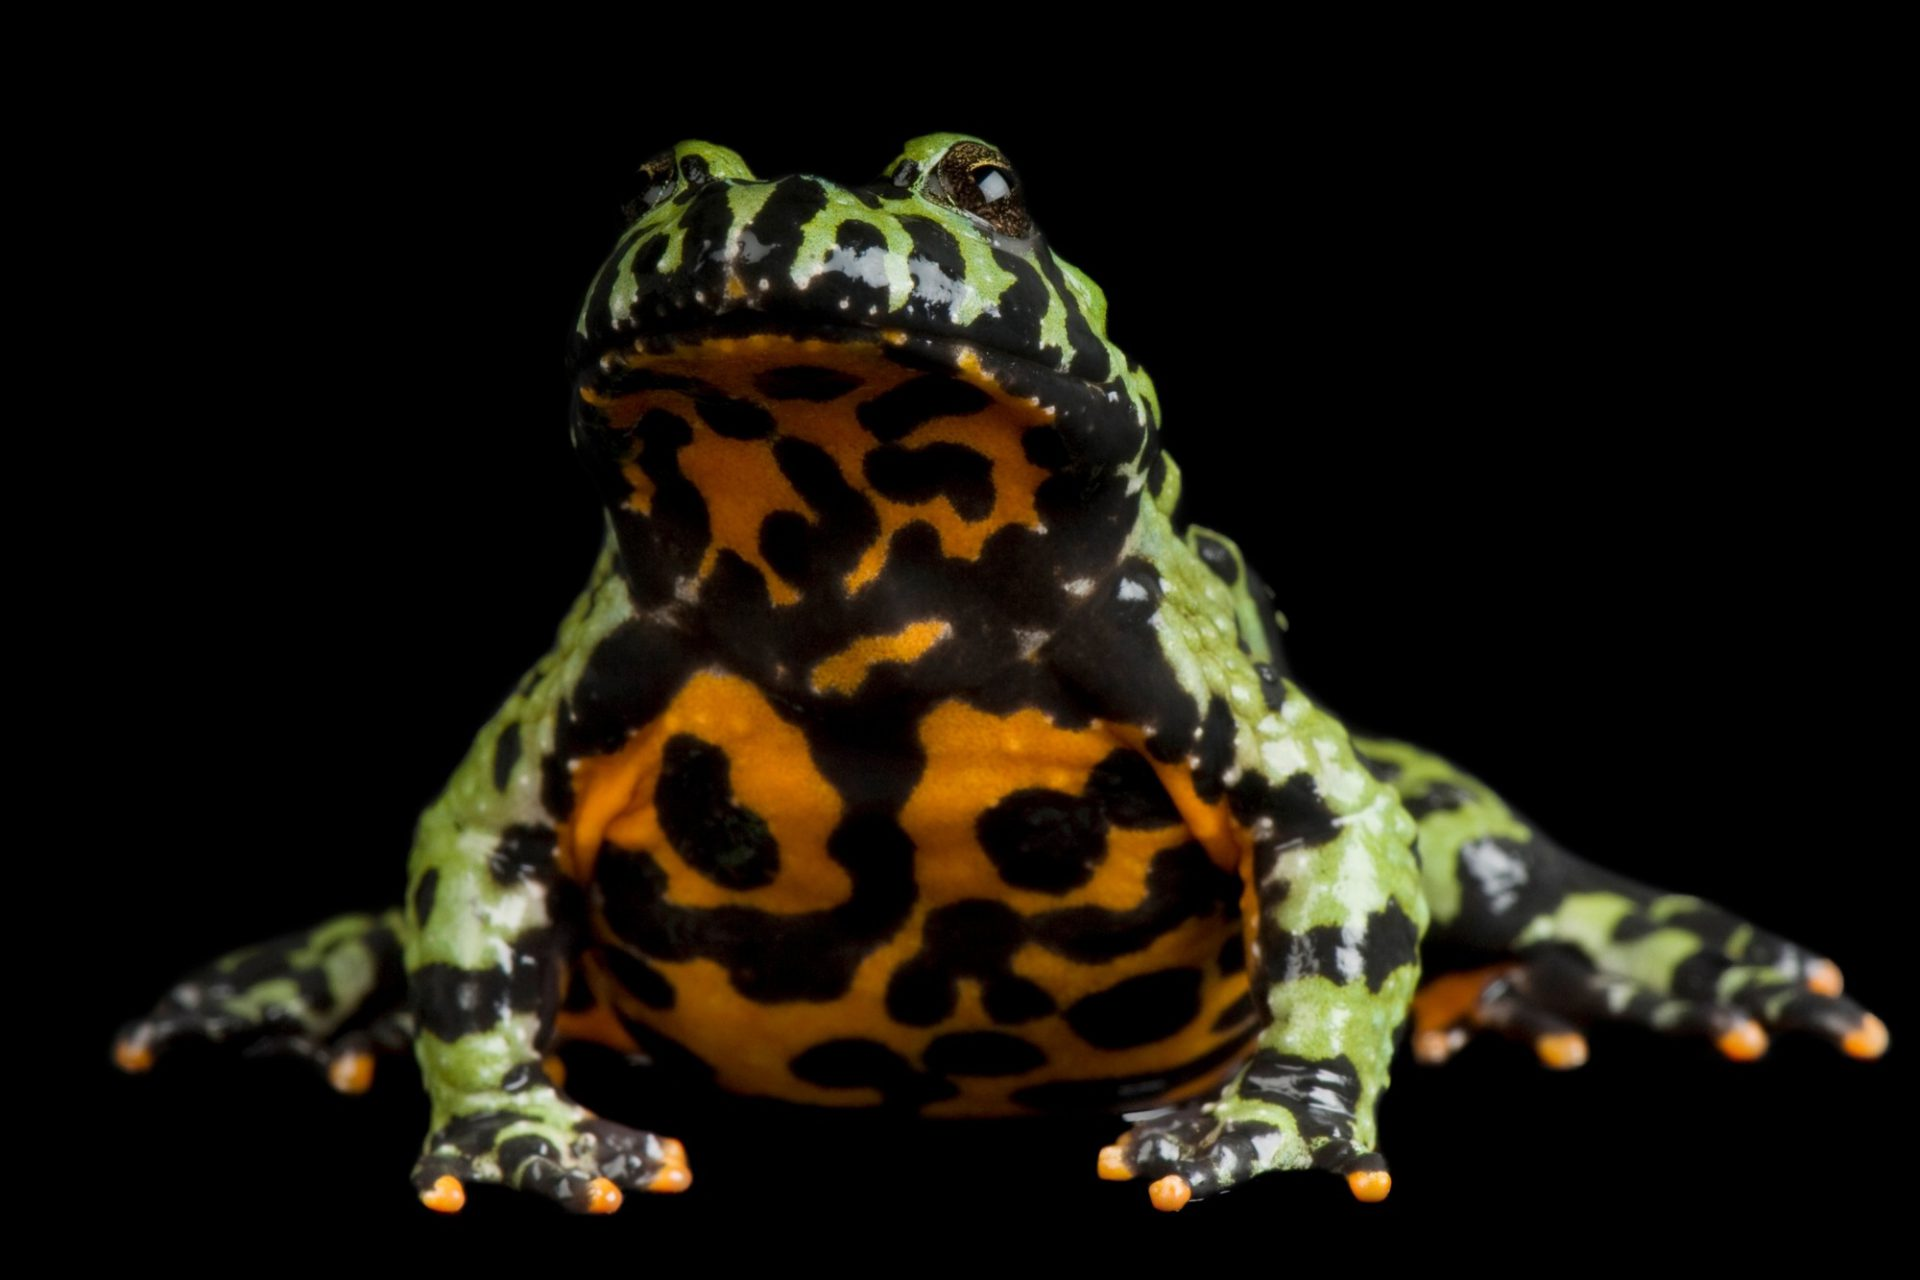 Photo: Oriental fire-bellied toad (Bombina orientalis) at the Denver Zoo.